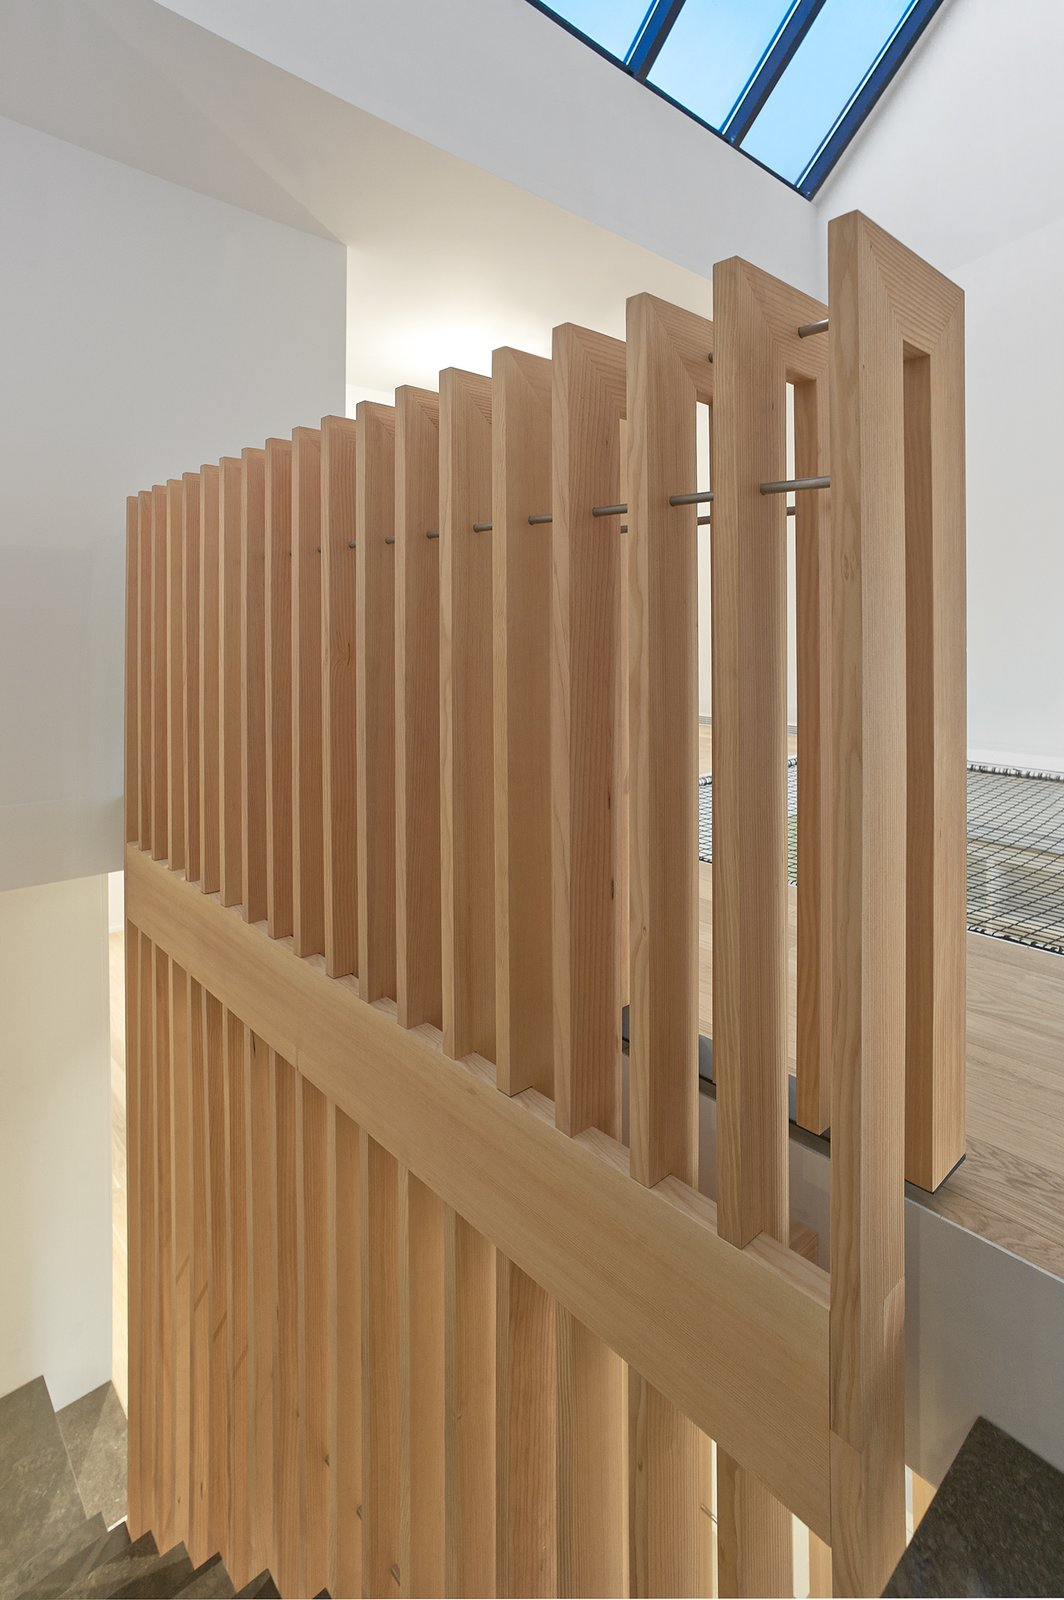 Detail of the douglas fir guardrail at the third floor level.  Atrium Townhome by RobitailleCurtis